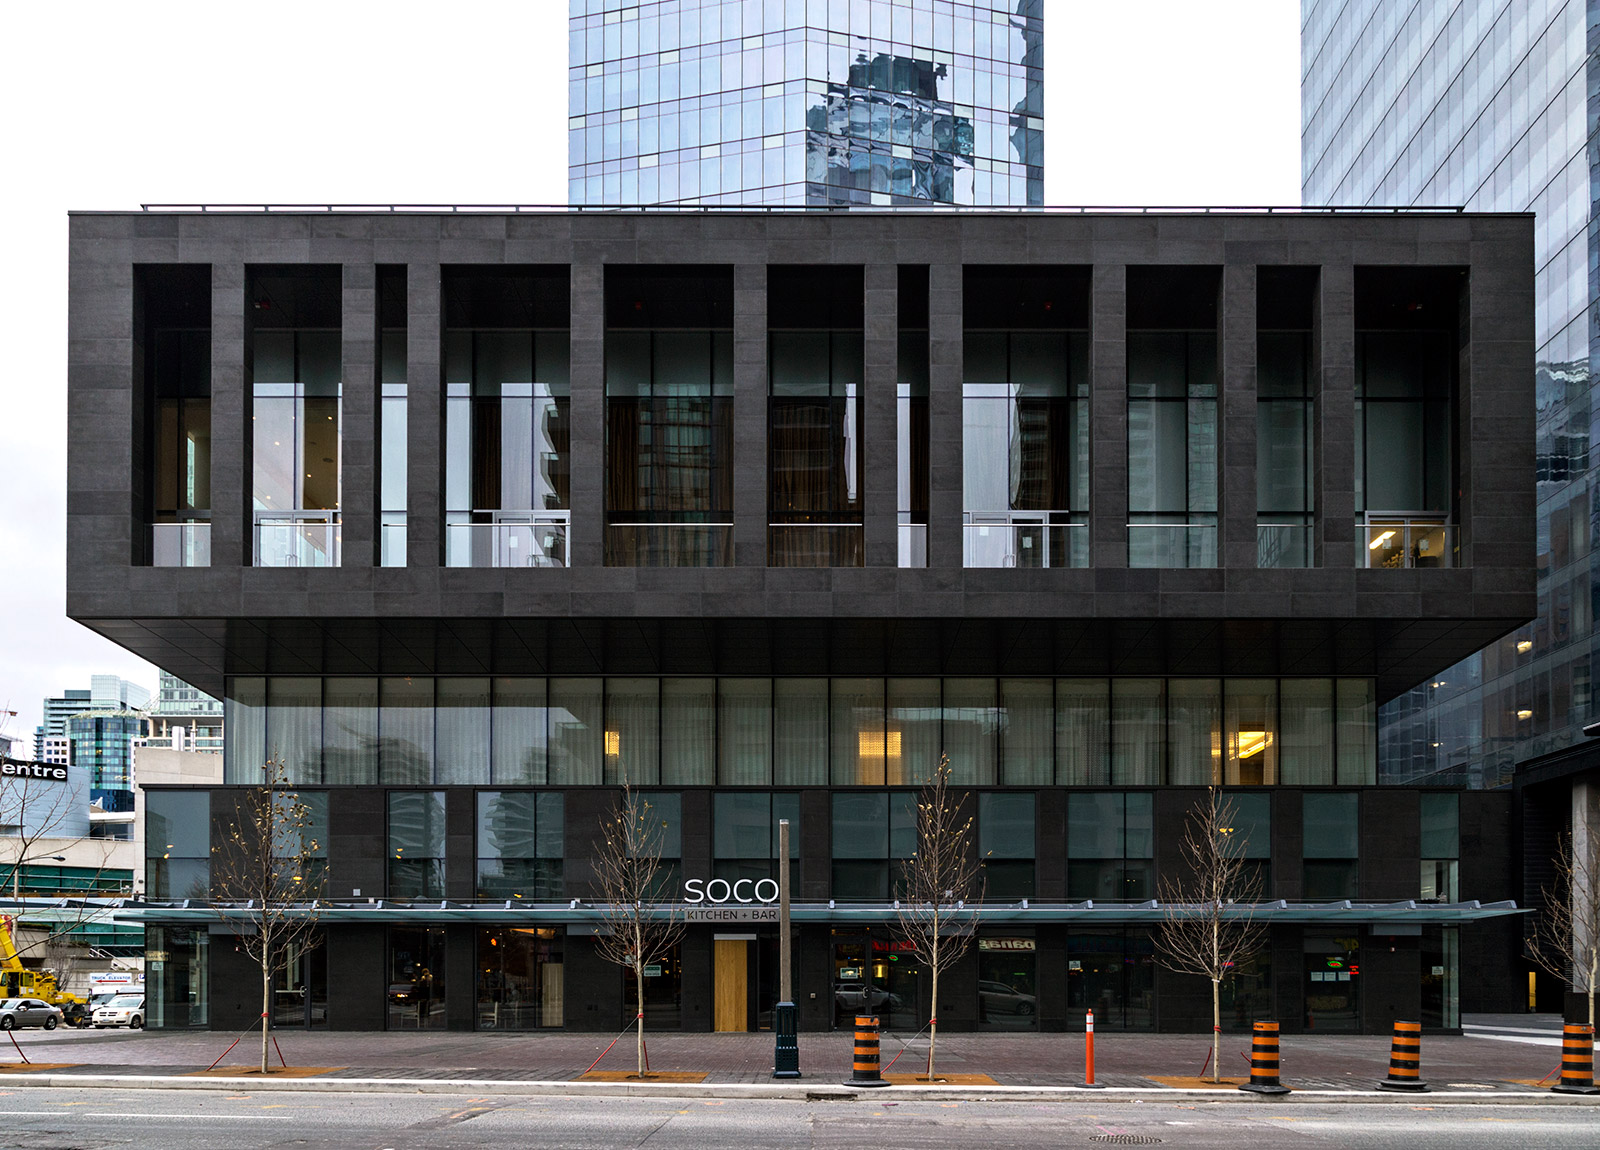 20141208. The Delta Toronto hotel podium projects forward while